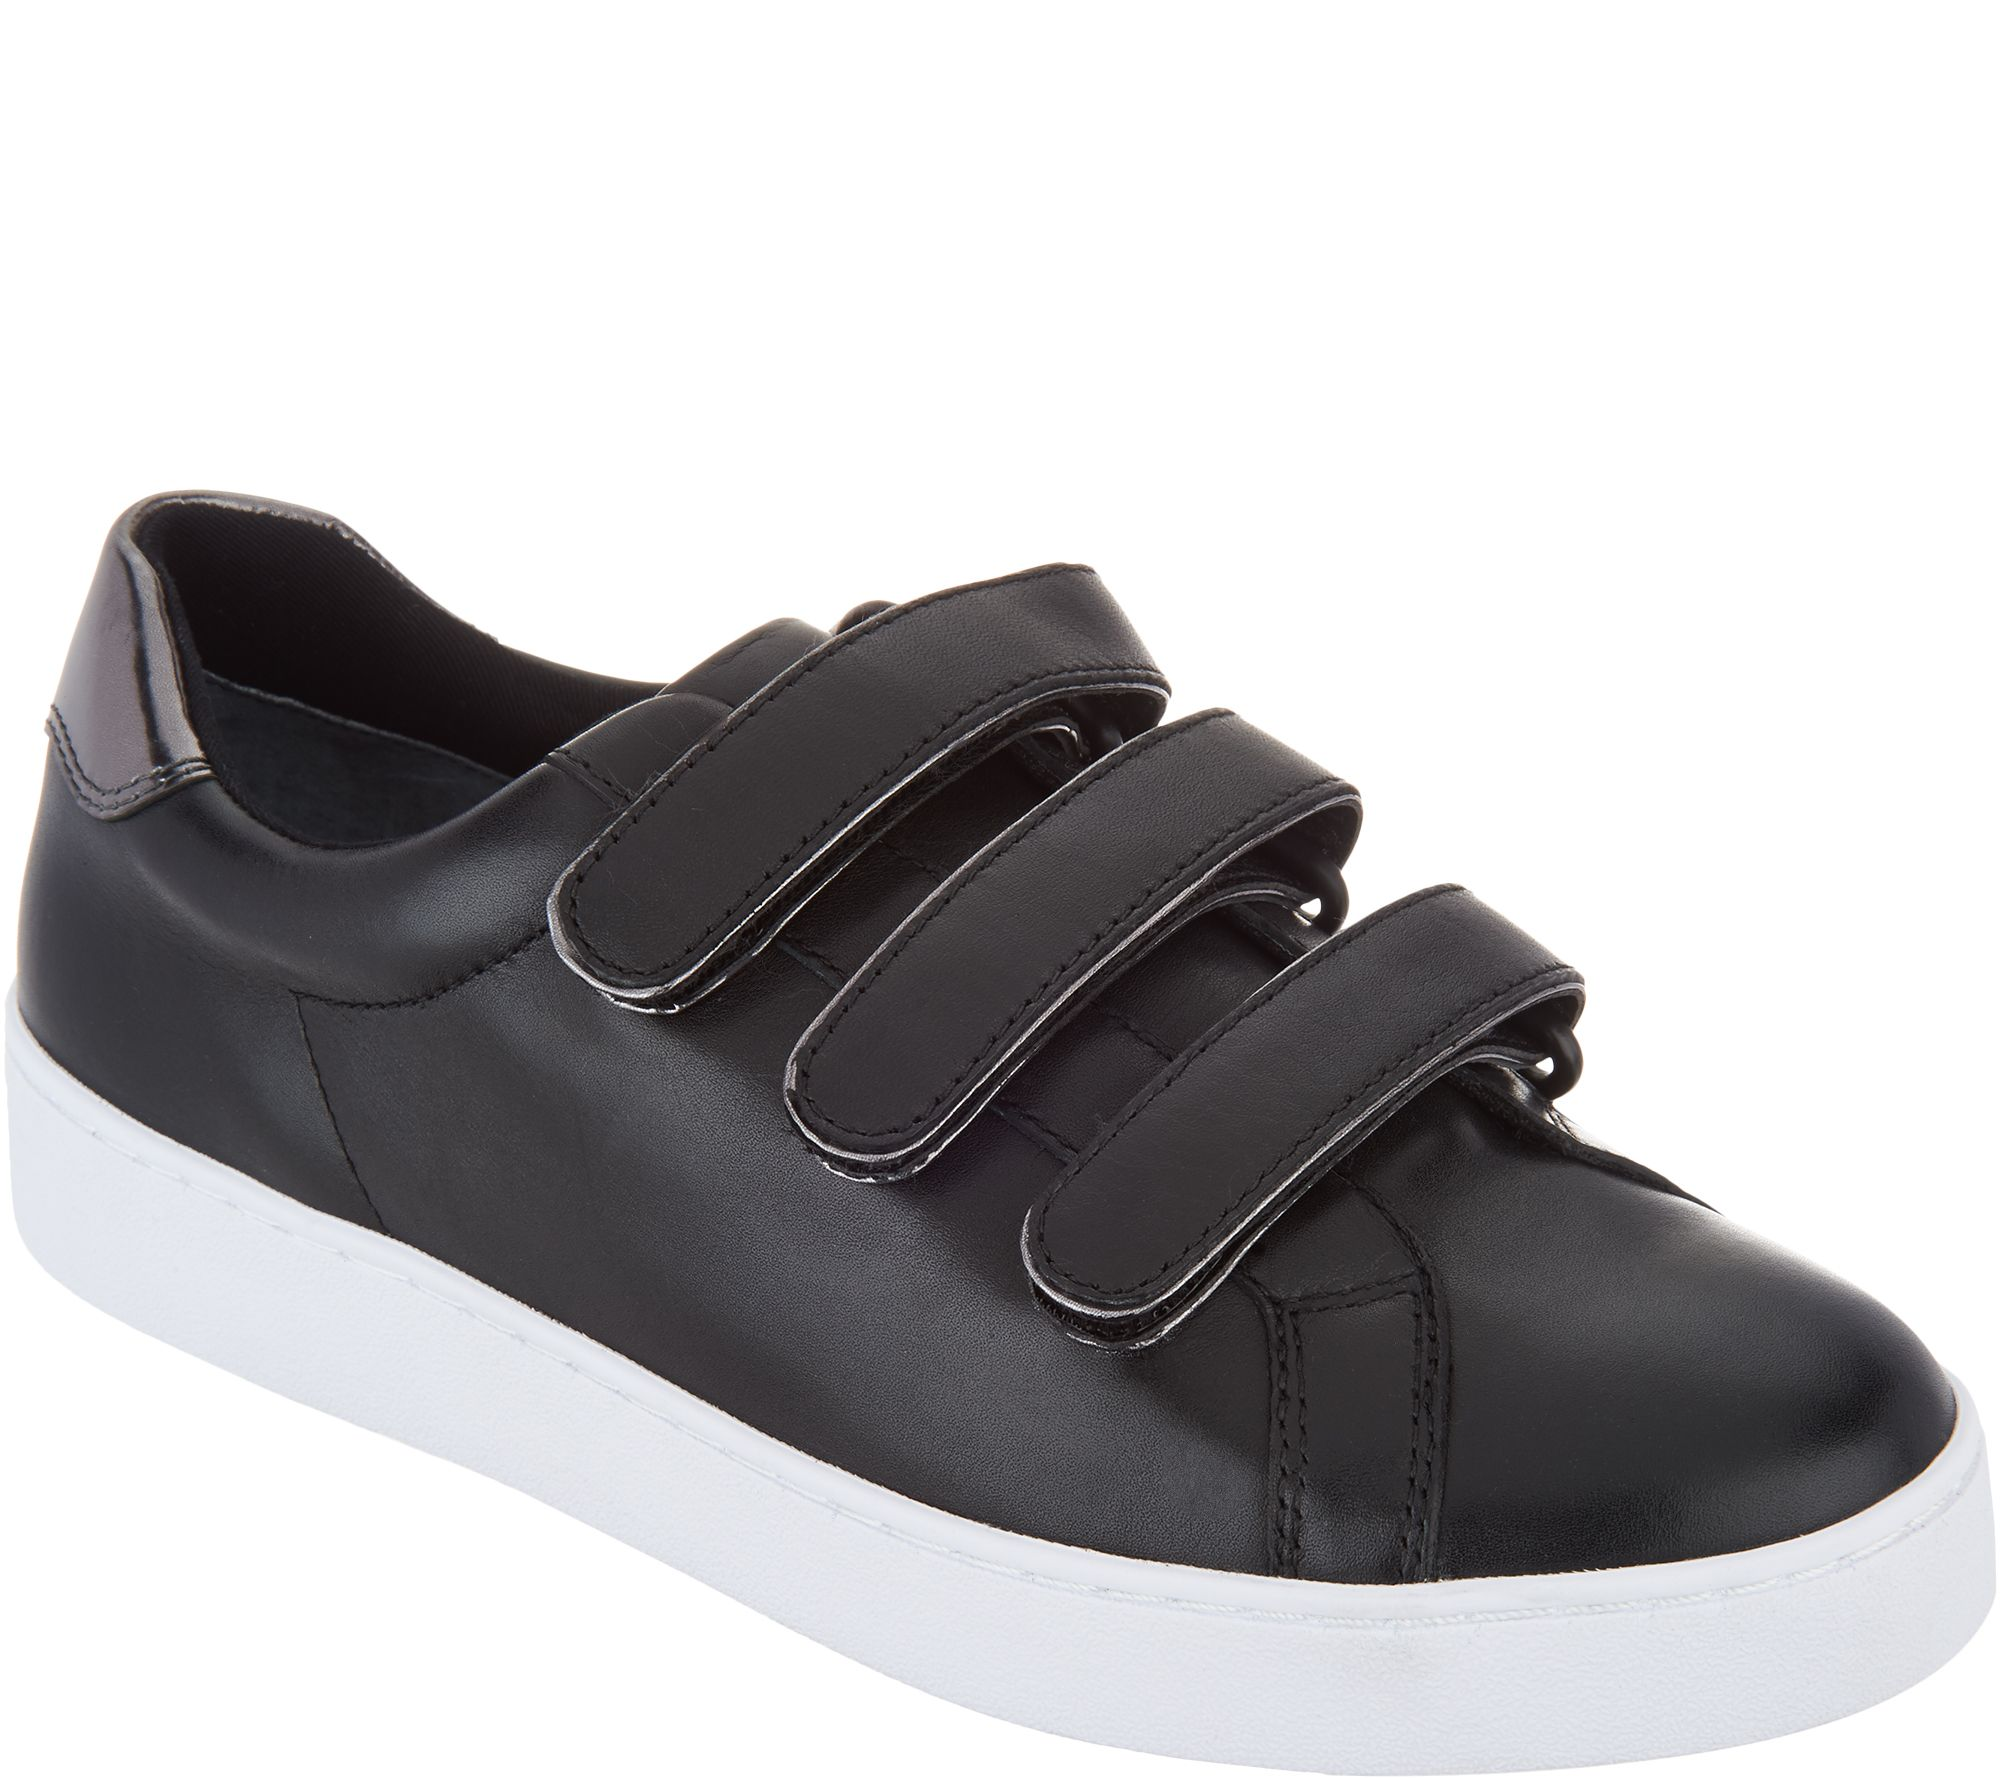 2f80b8270ee3 Vionic Leather Sneakers - Bobbi - Page 1 — QVC.com